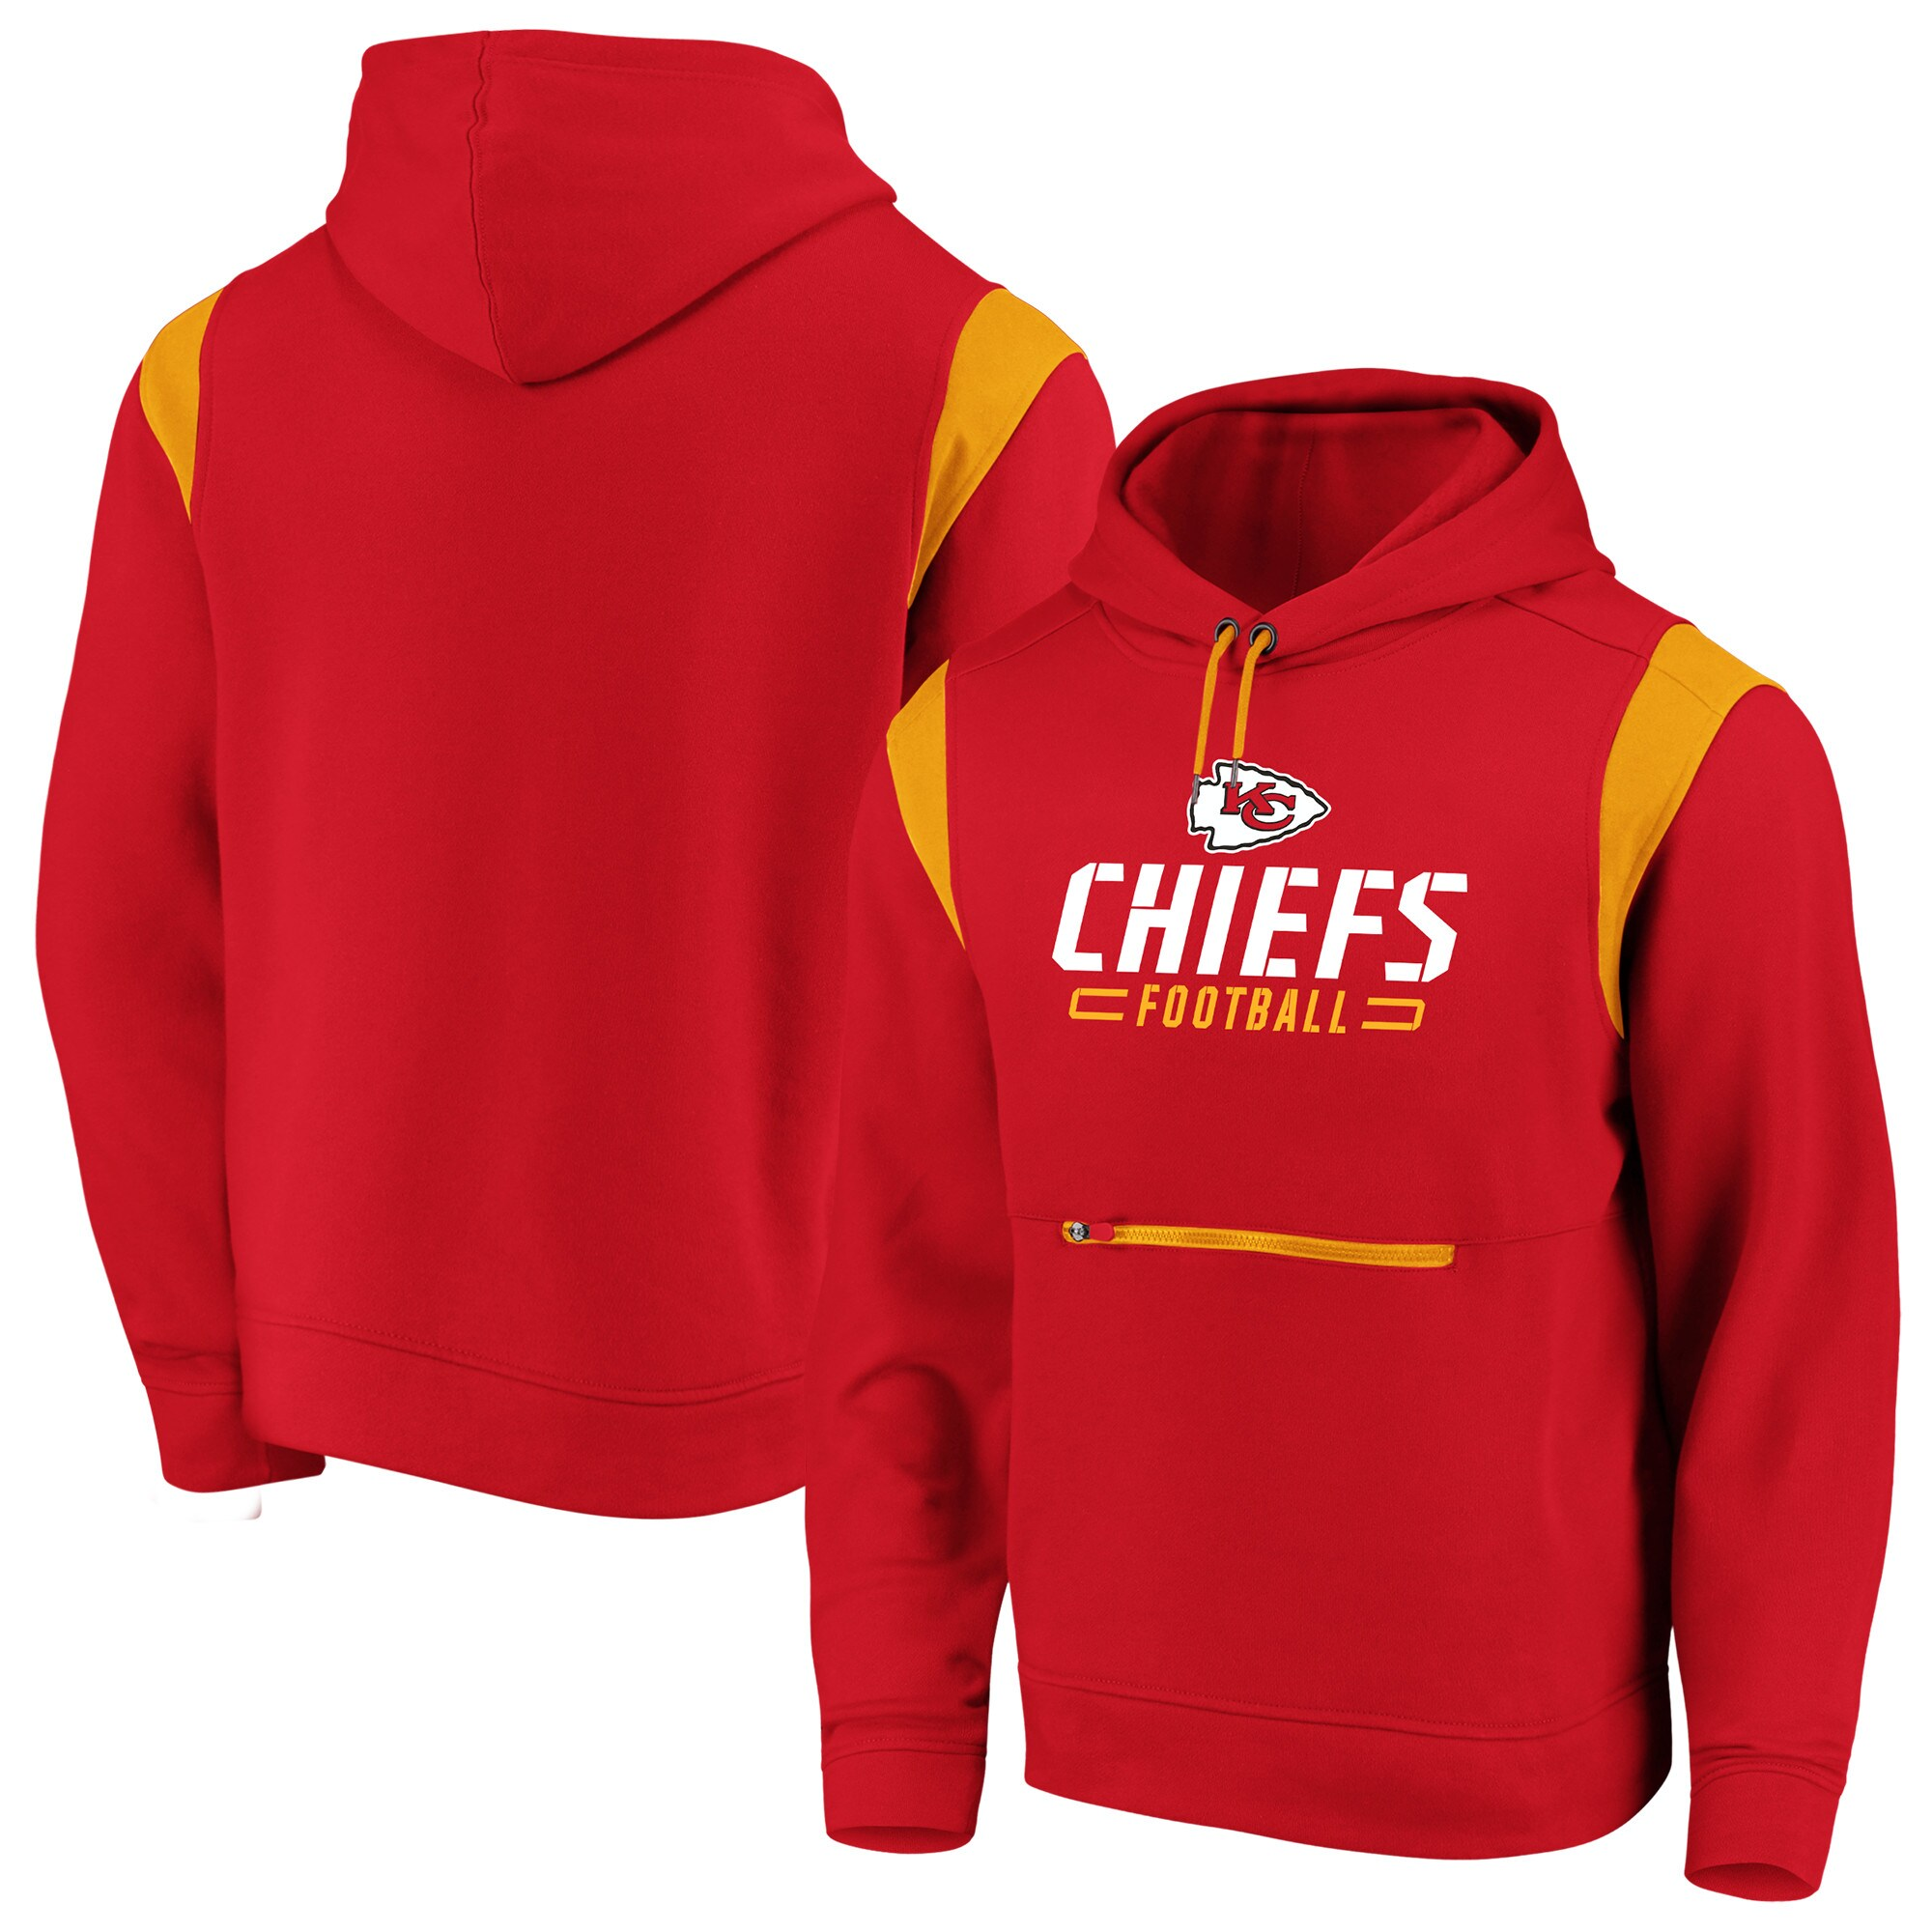 Kansas City Chiefs NFL Pro Line by Fanatics Branded Big & Tall Iconic Overdrive Pullover Hoodie - Red/Yellow